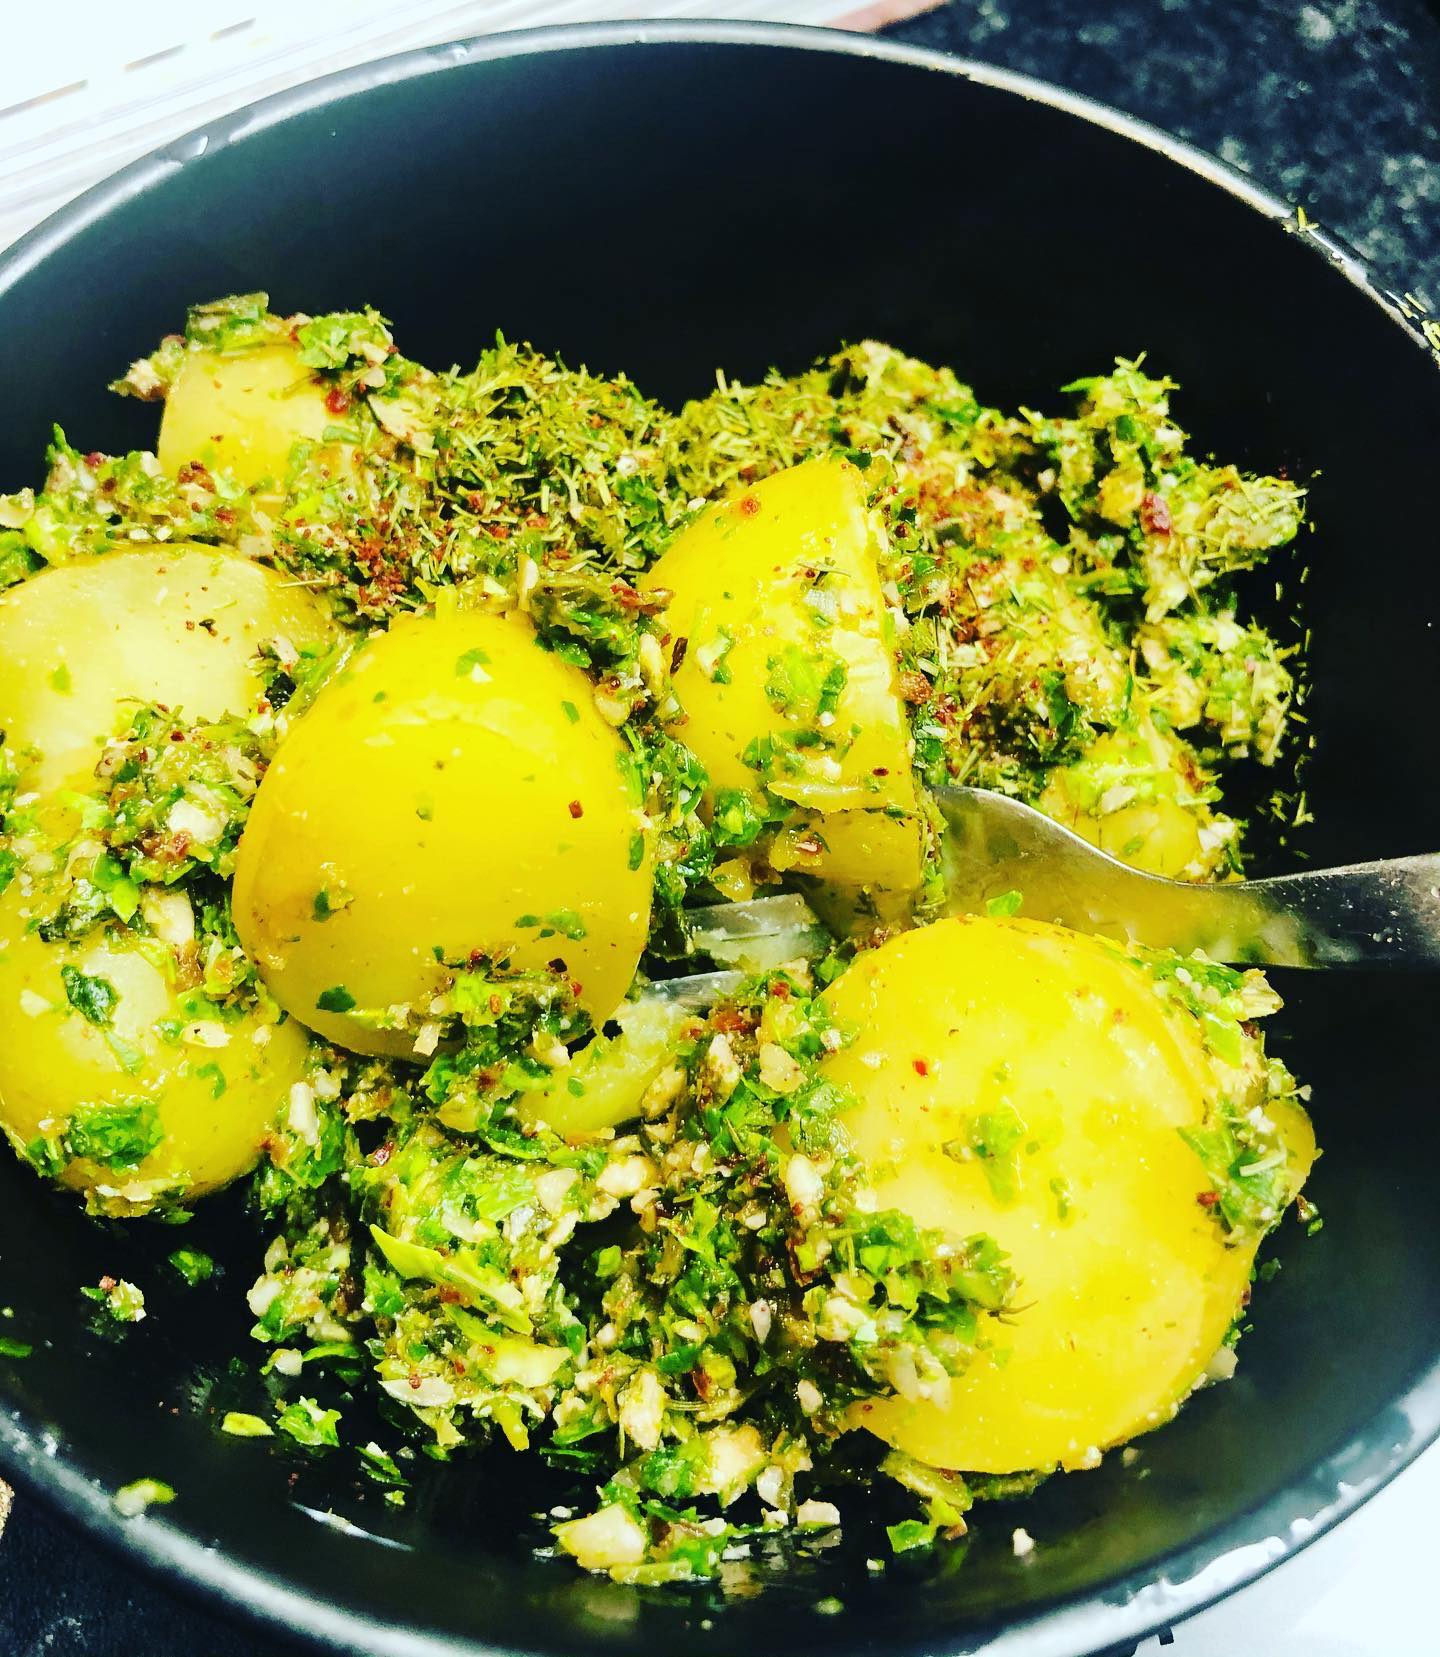 Nut-Free Vegan Pesto New Potatoes